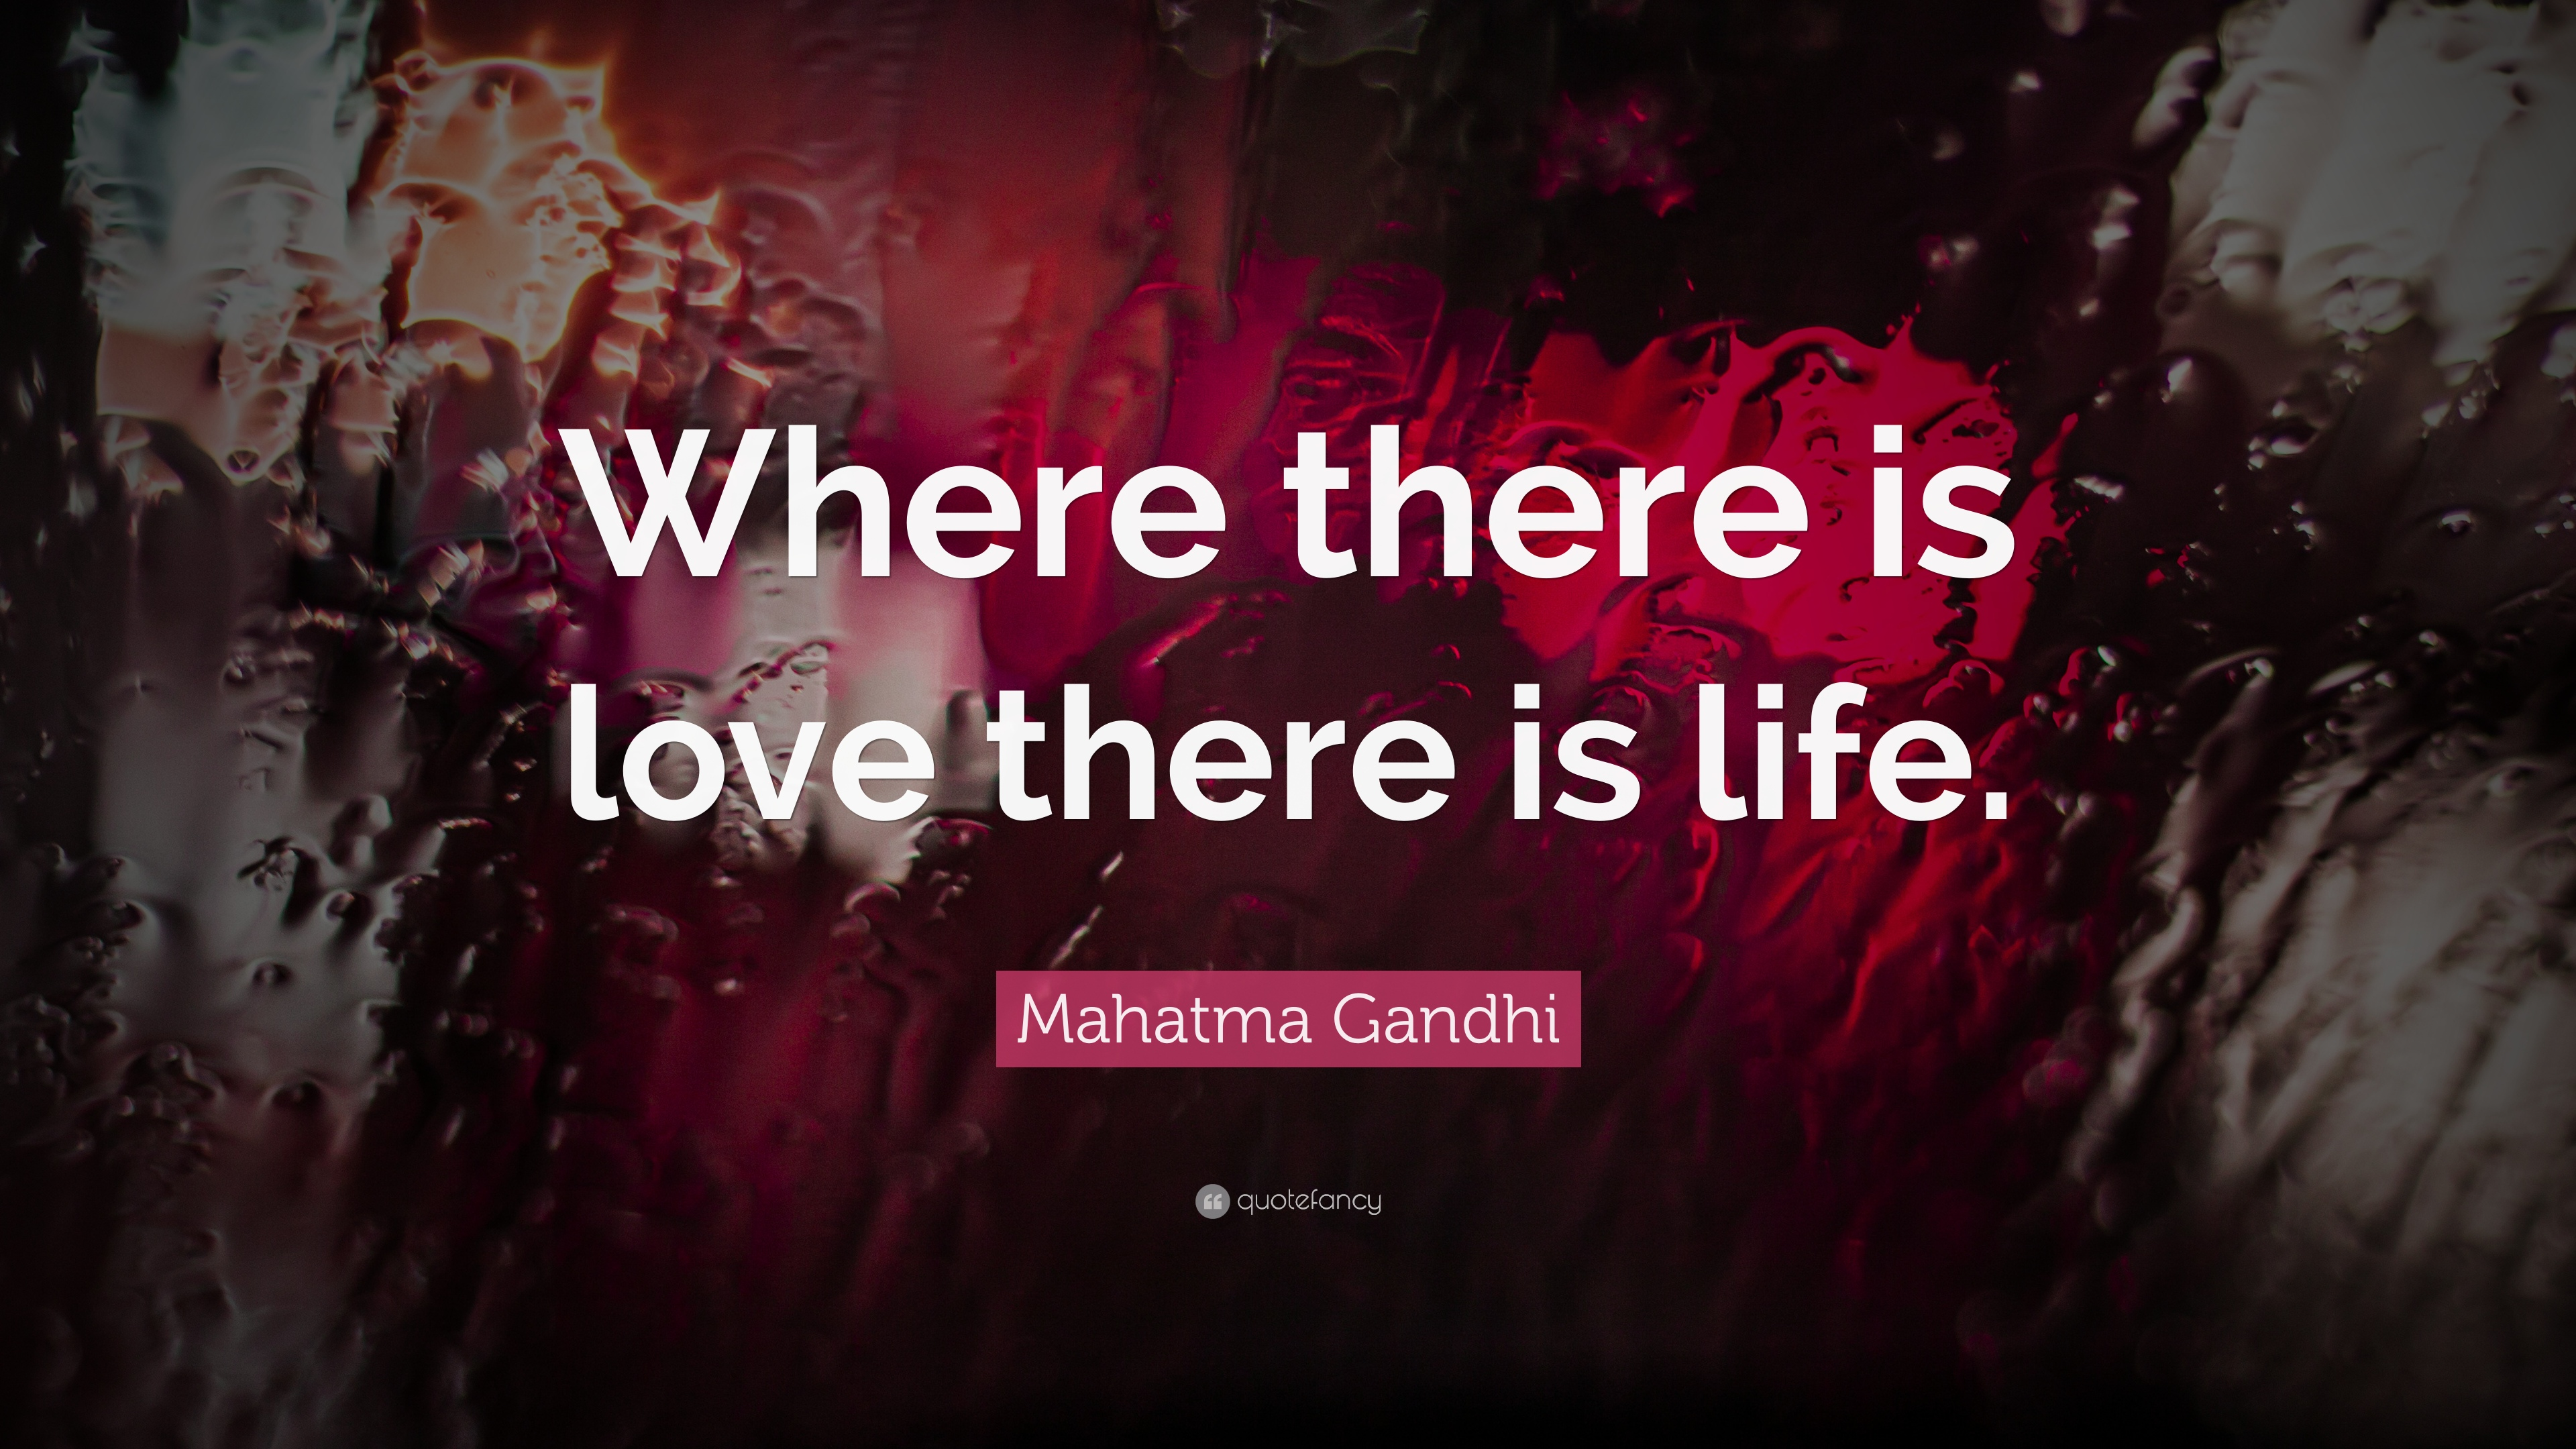 """Mahatma Gandhi Quotes On Love Mahatma Gandhi Quote """"Where There Is Love There Is Life."""" 21"""